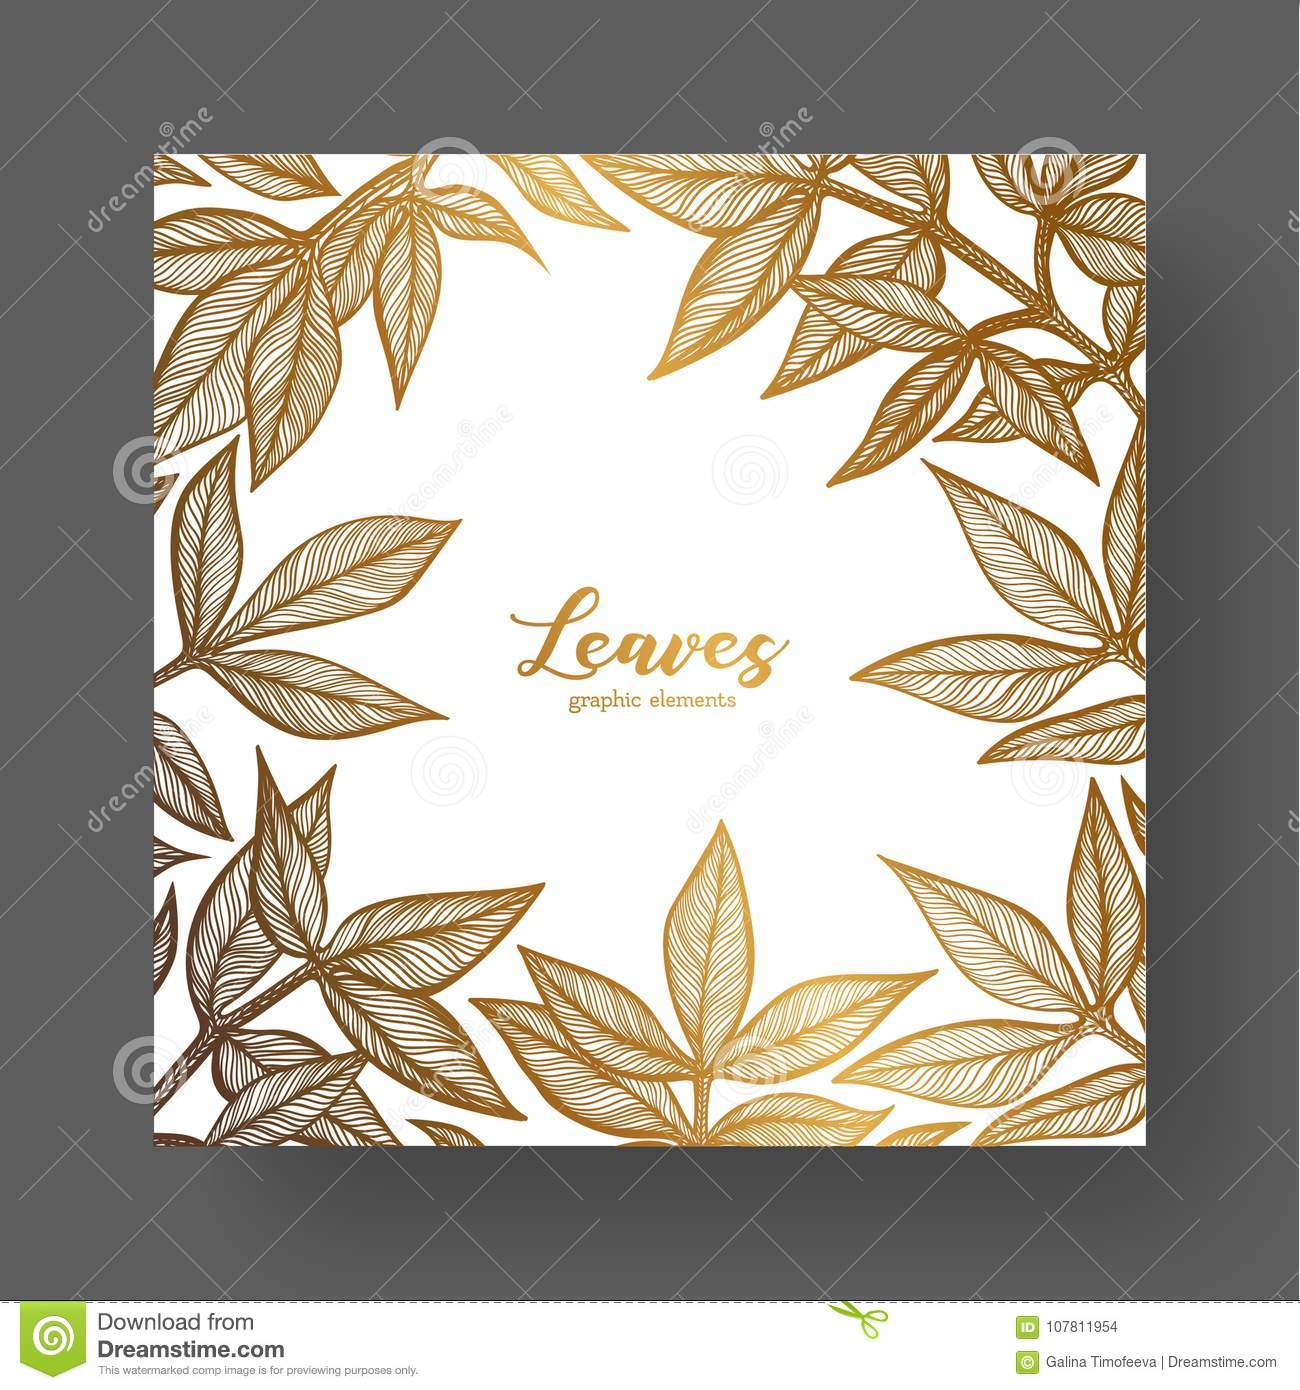 Gold Design Template For Wedding Invitations, Greeting Cards, Labels ...